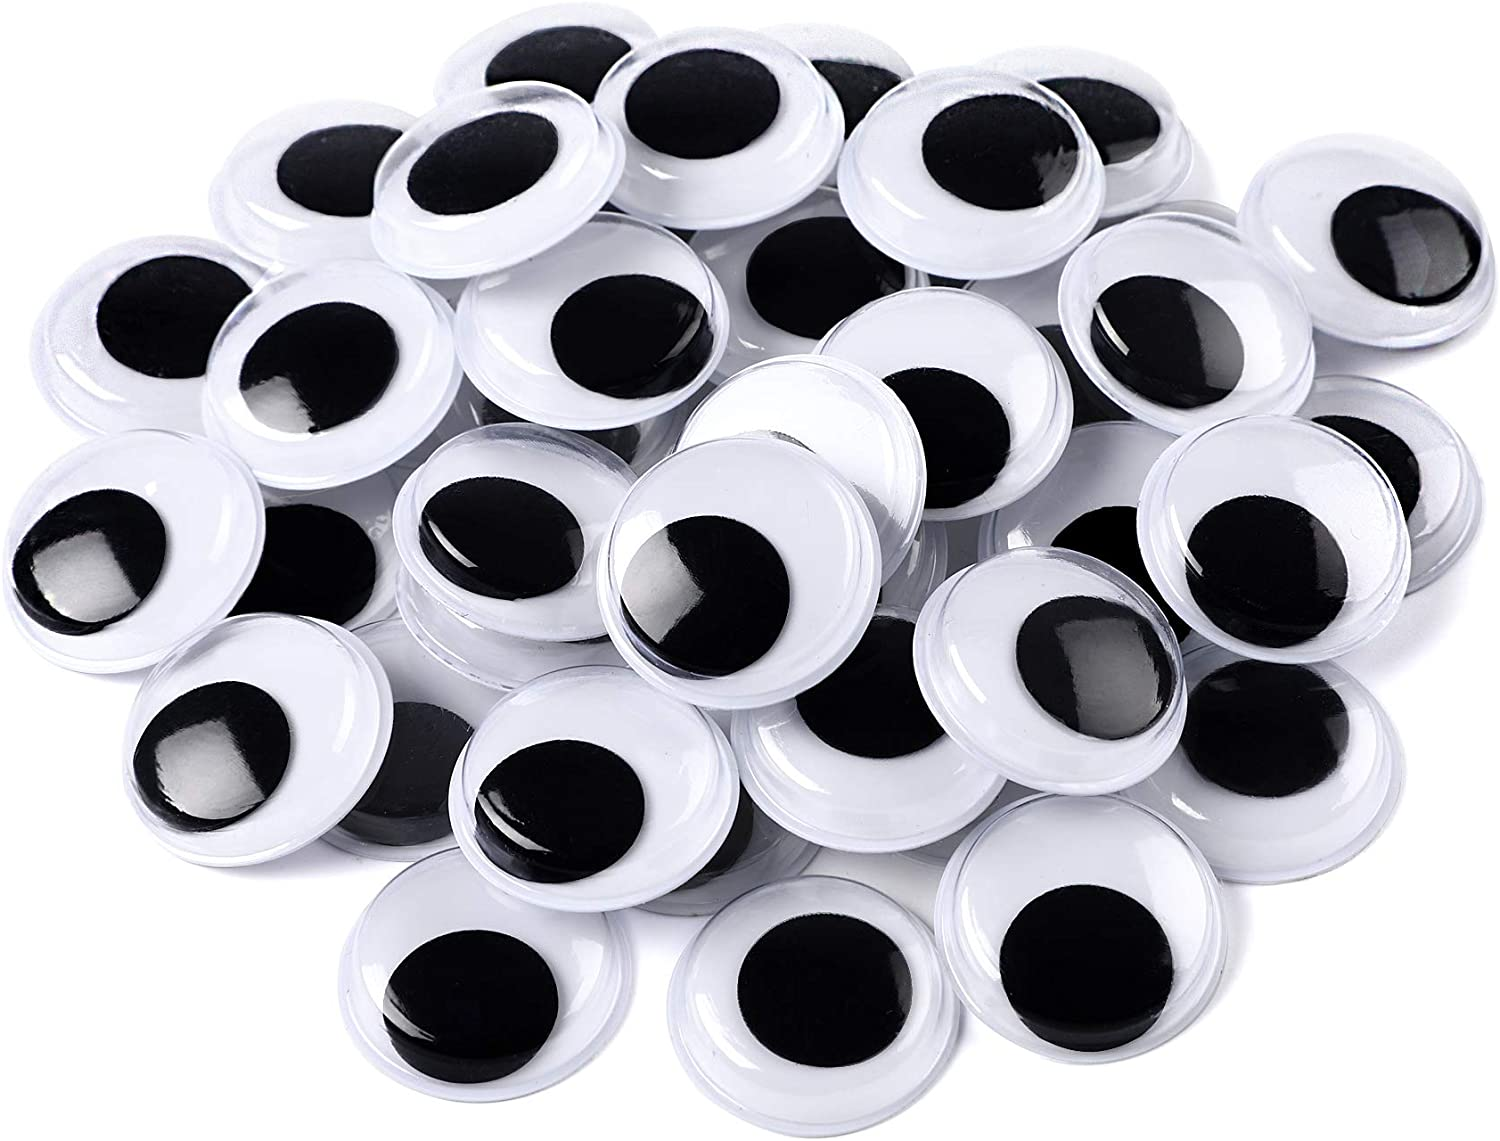 Recommended 200 Pieces Wiggle Eyes Self White for Adhesive Black Googly Weekly update